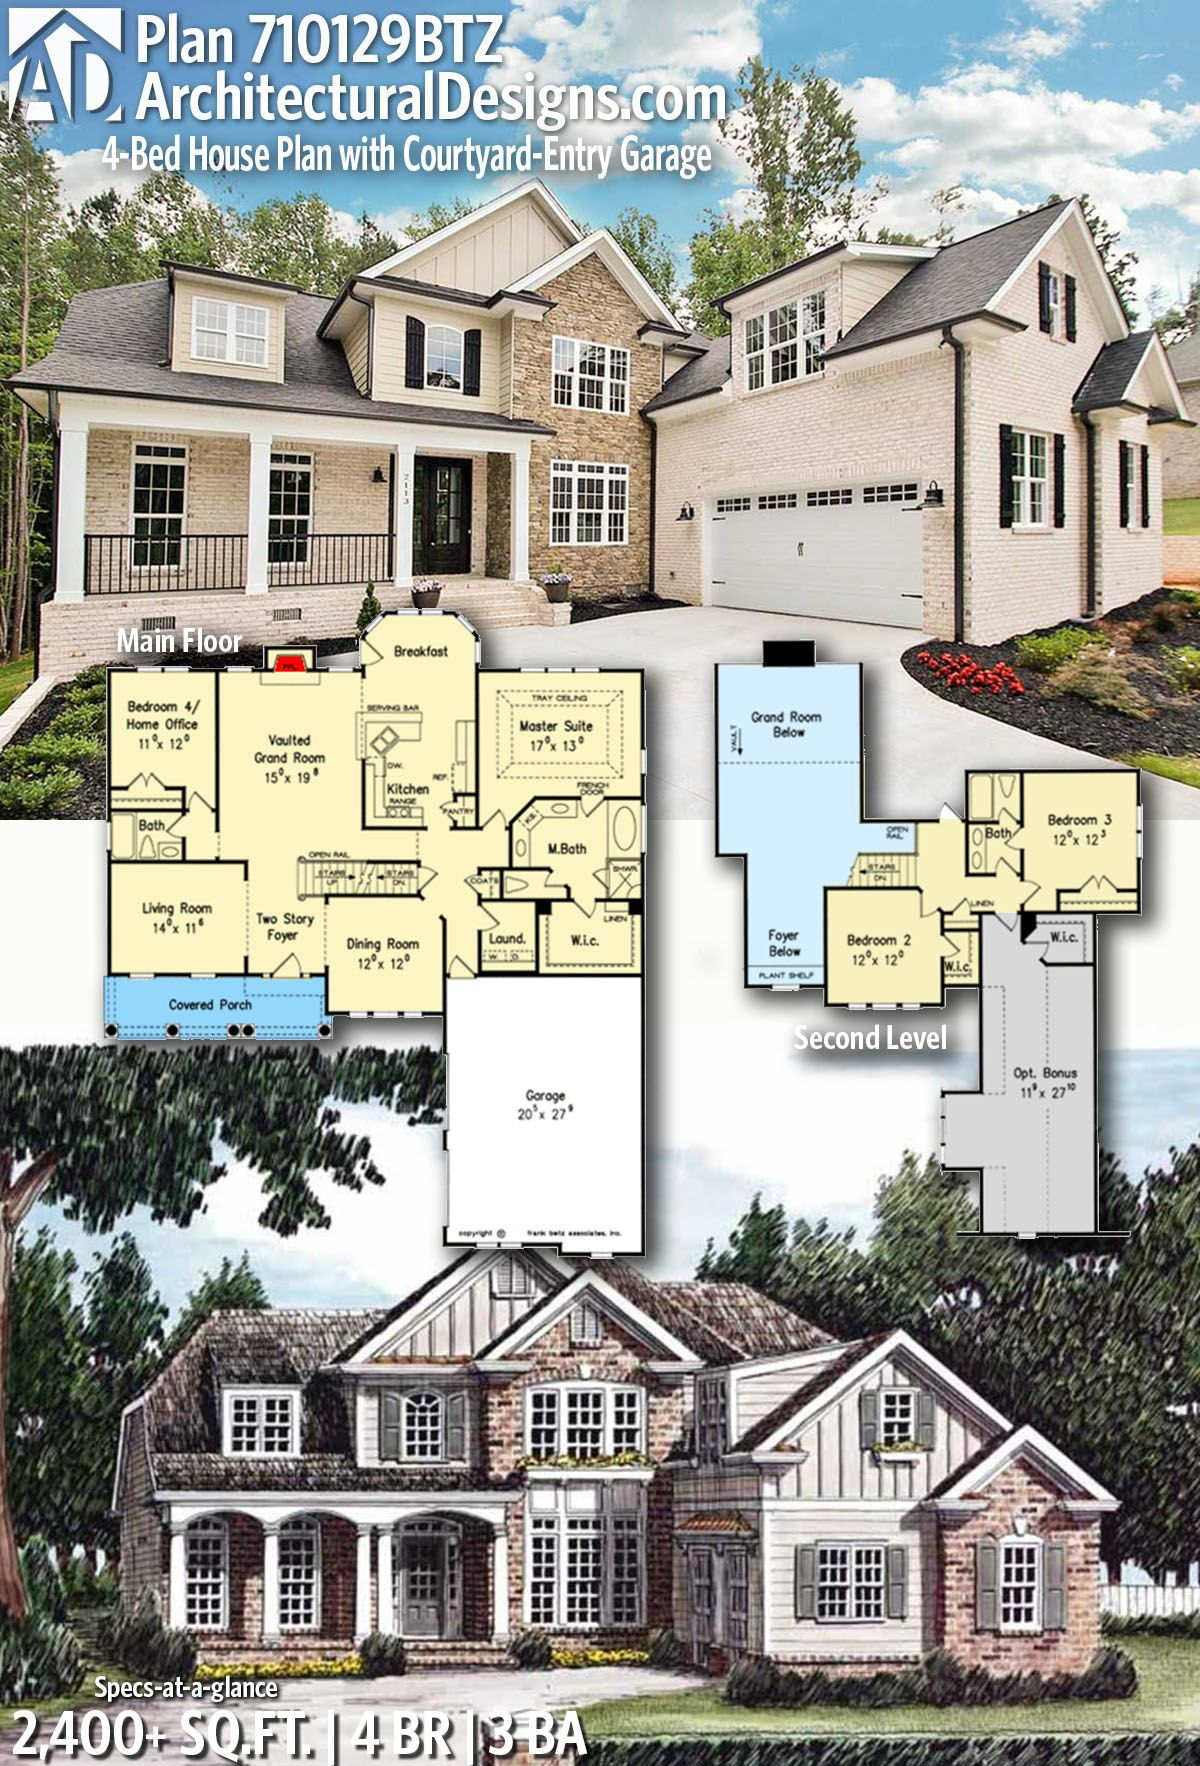 Plan 710129BTZ: 4-Bed House Plan with Courtyard-Entry Garage | Courtyard  house plans, Garage house plans, House plans